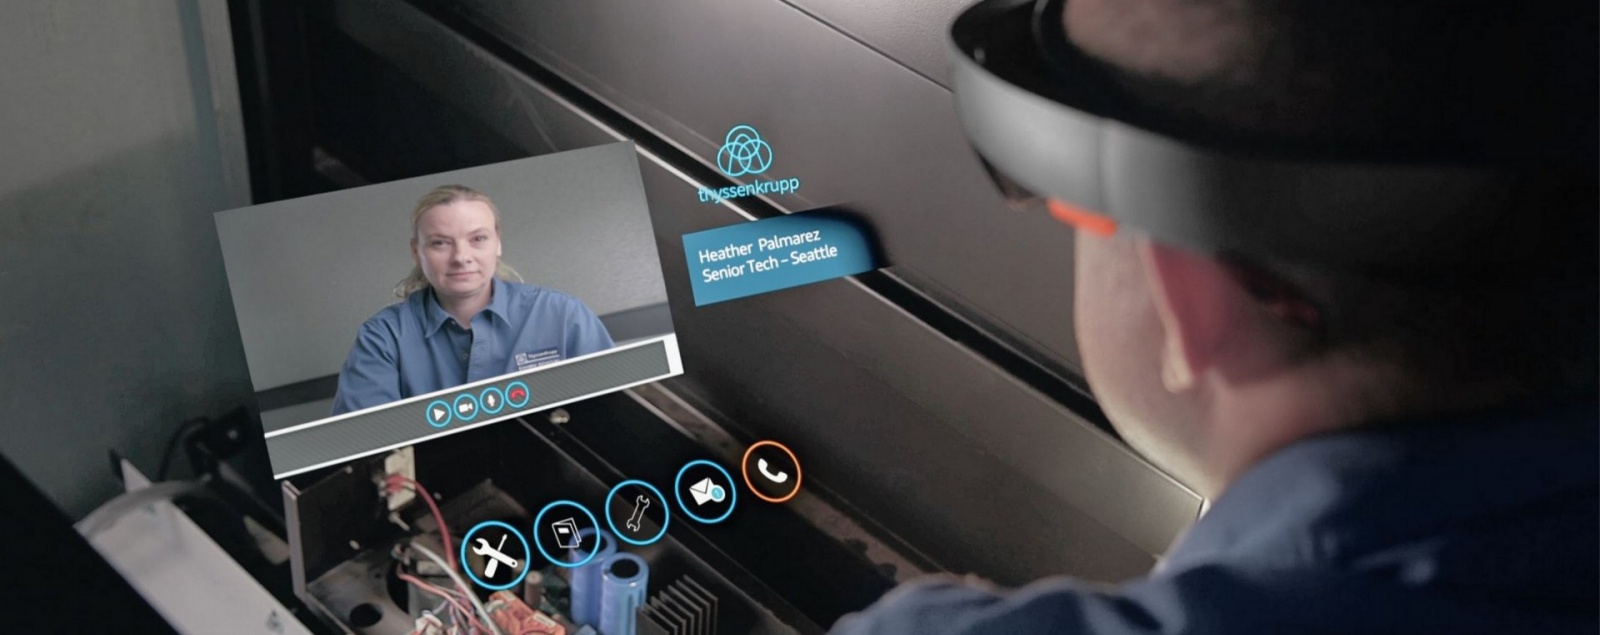 Augmented-Reality-in-field-service